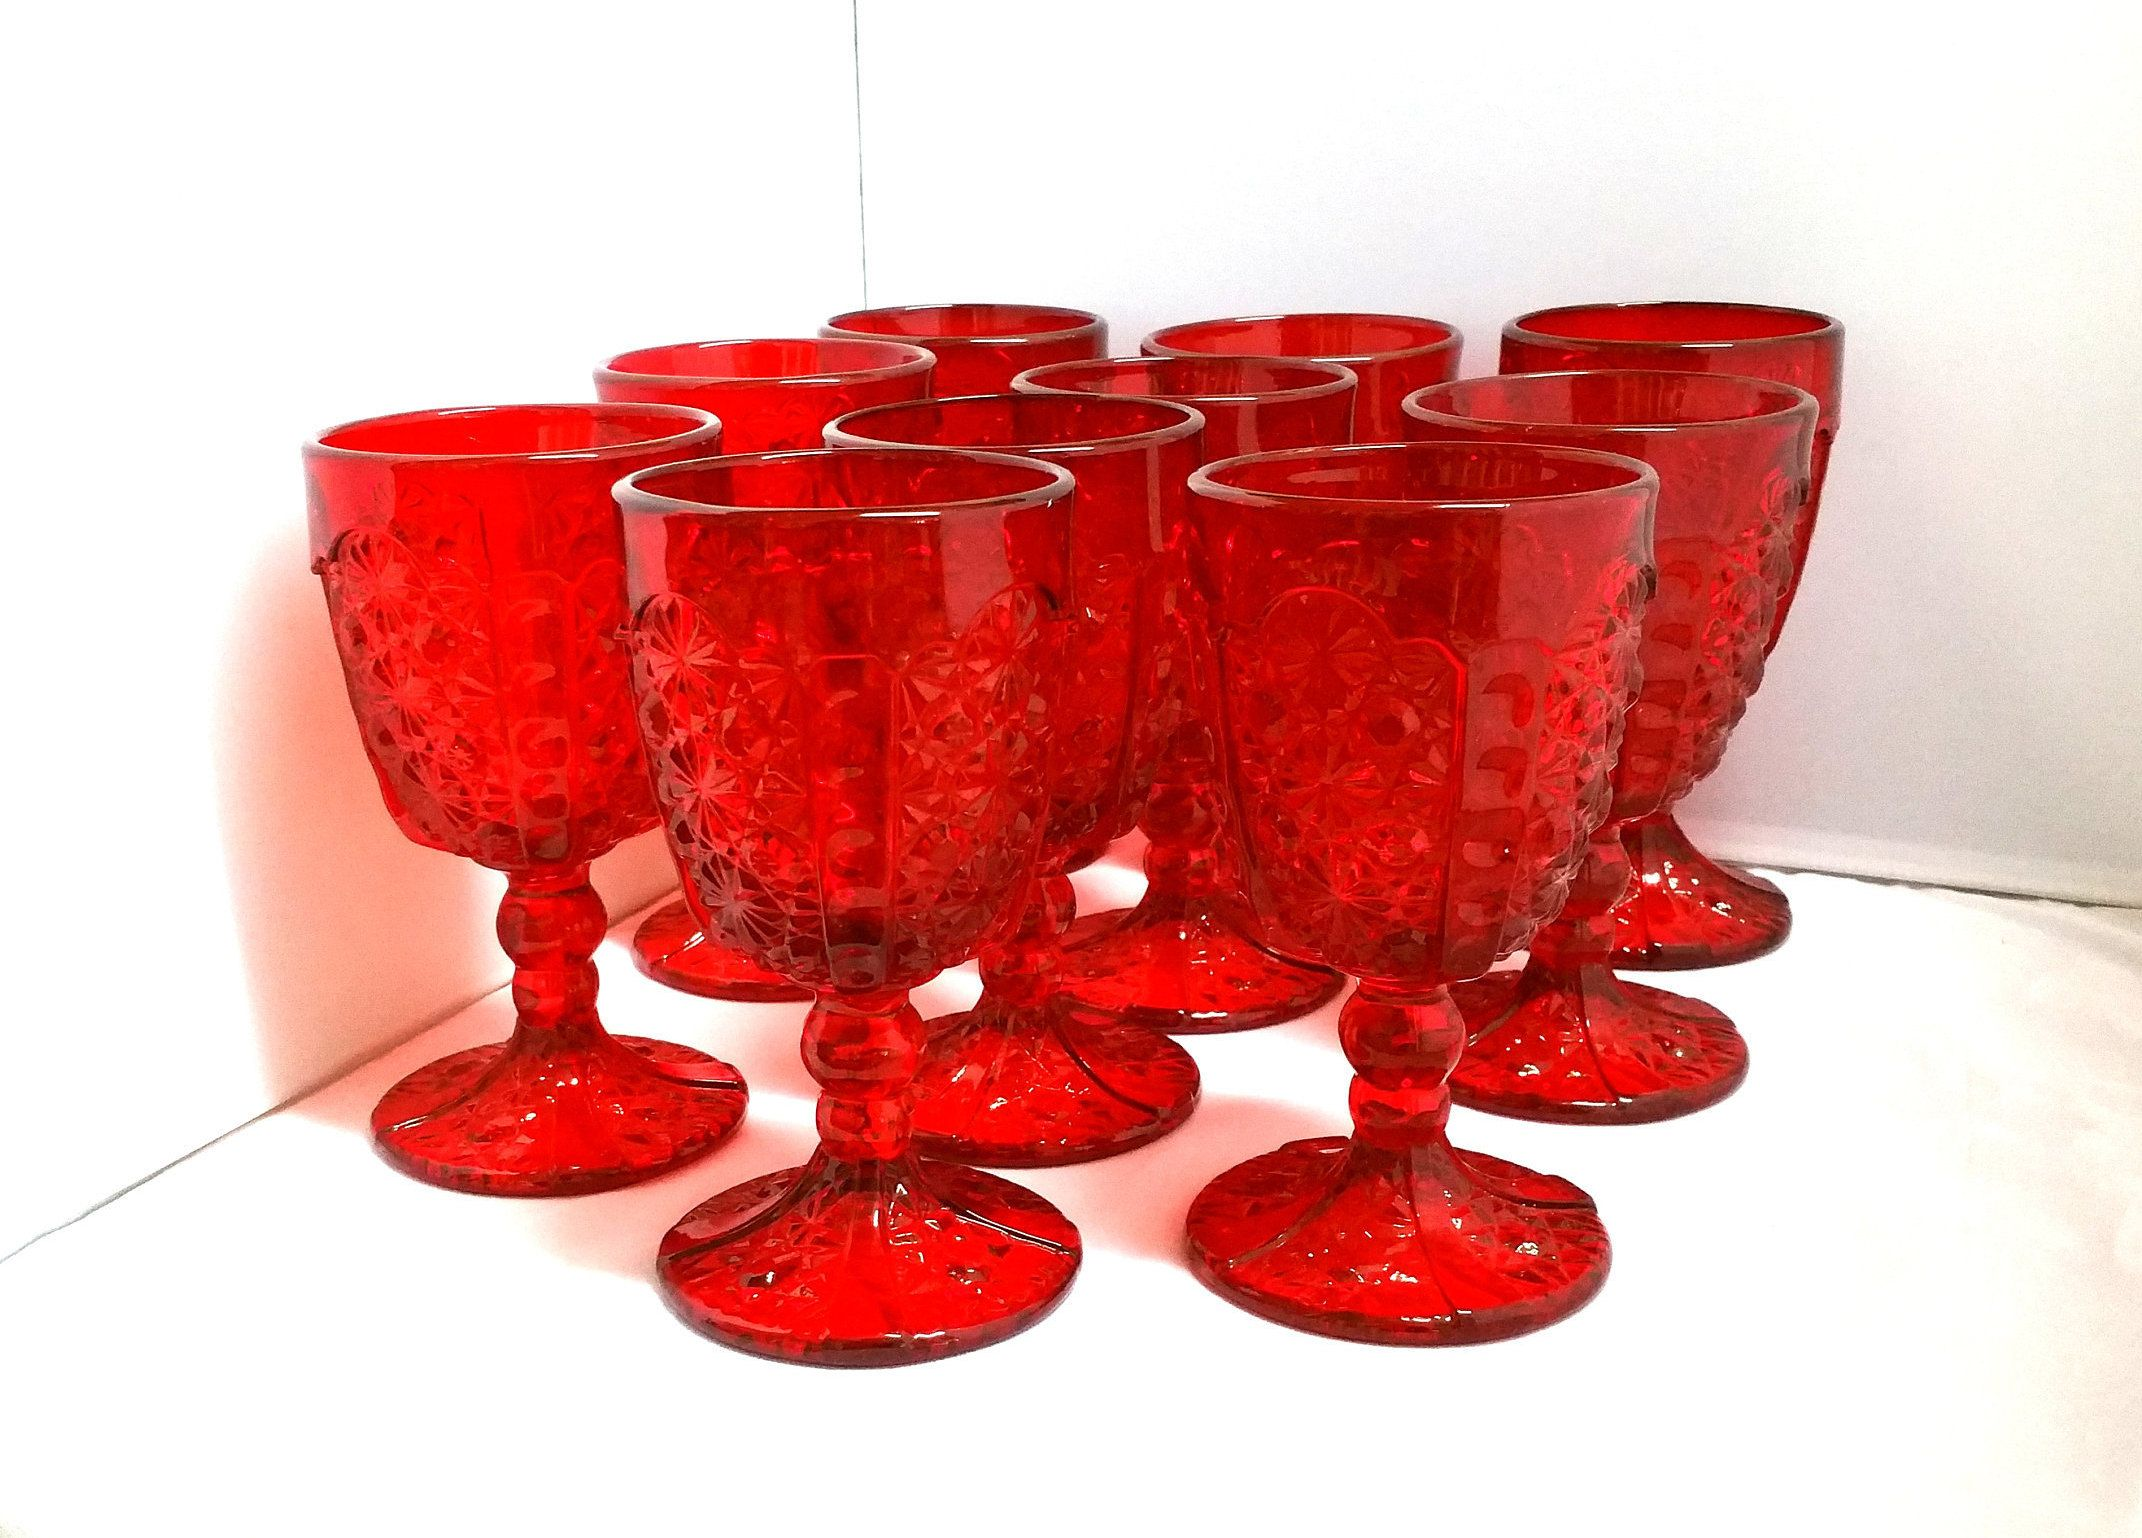 10 Ruby Red L G Wright Goblet Glasses Etsy In 2020 Ruby Red Red Glass Goblet